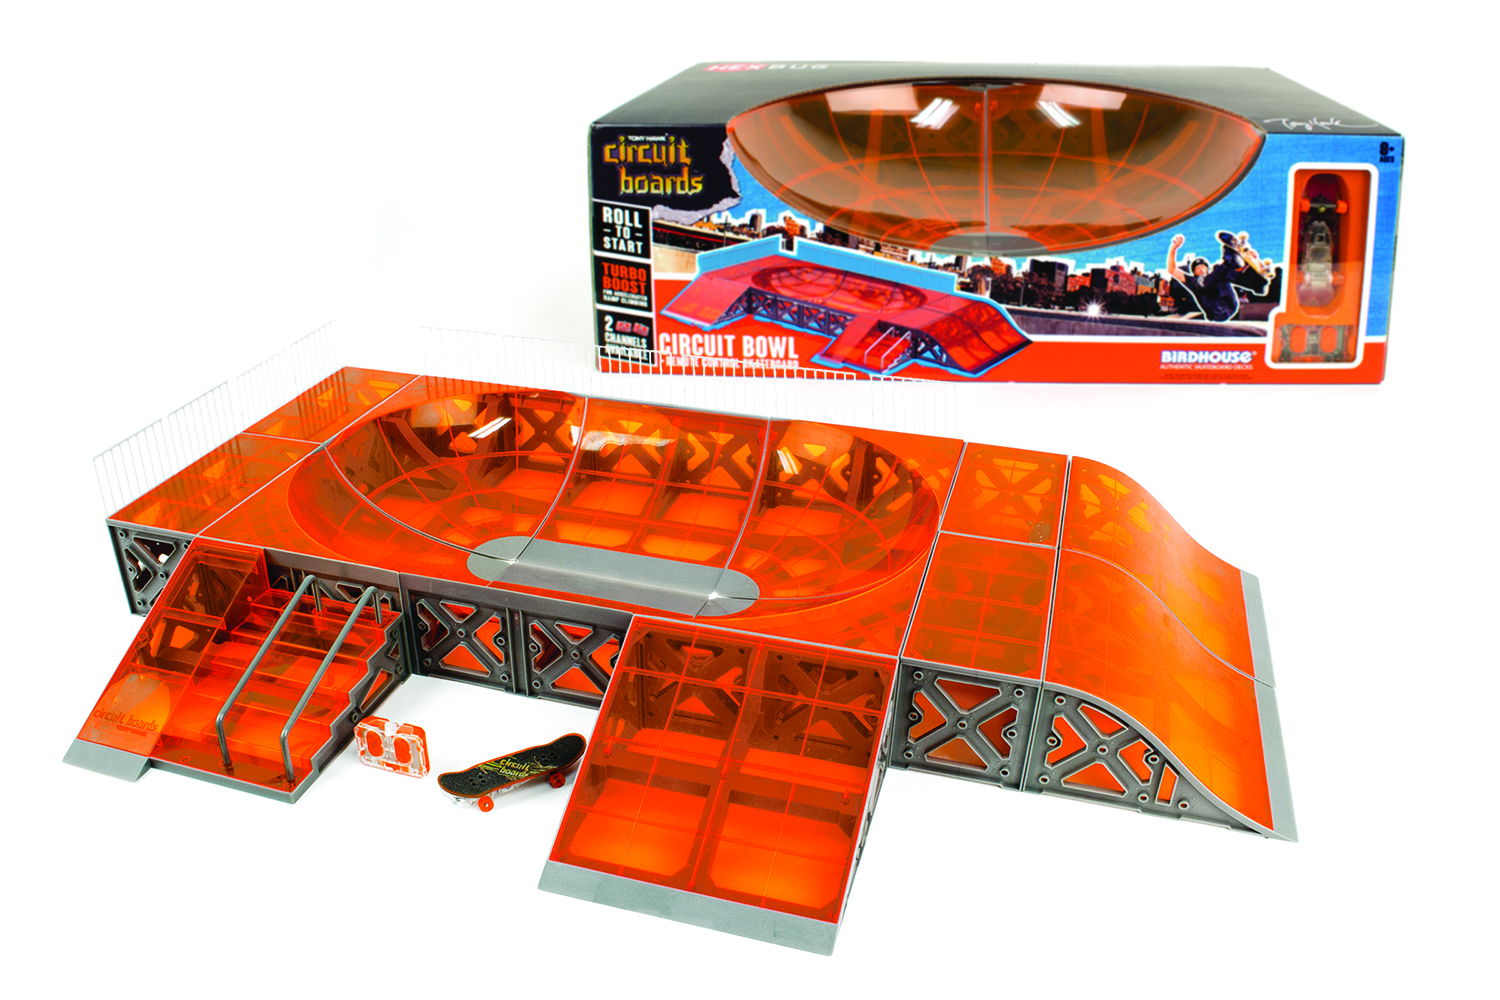 tony hawk circuit boards for teens on your list this year tmmgg2015 rh thriftymommastips com